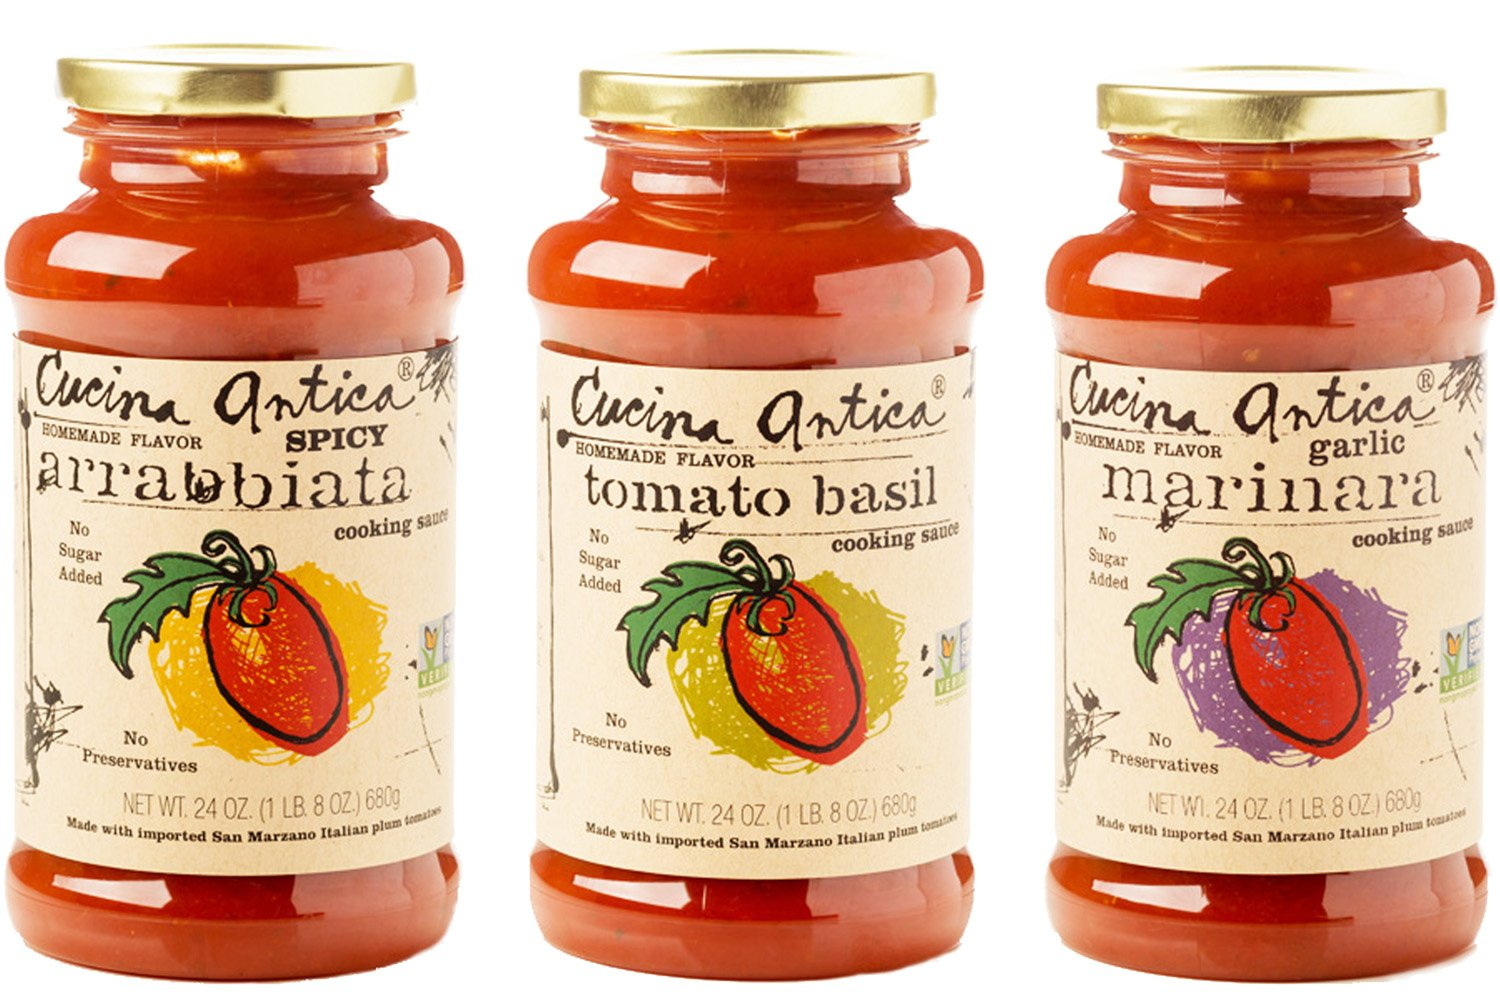 Cucina Antica Pasta Sauce Variety Pack Non Gmo Whole30 Approved 24oz Pack Of 3